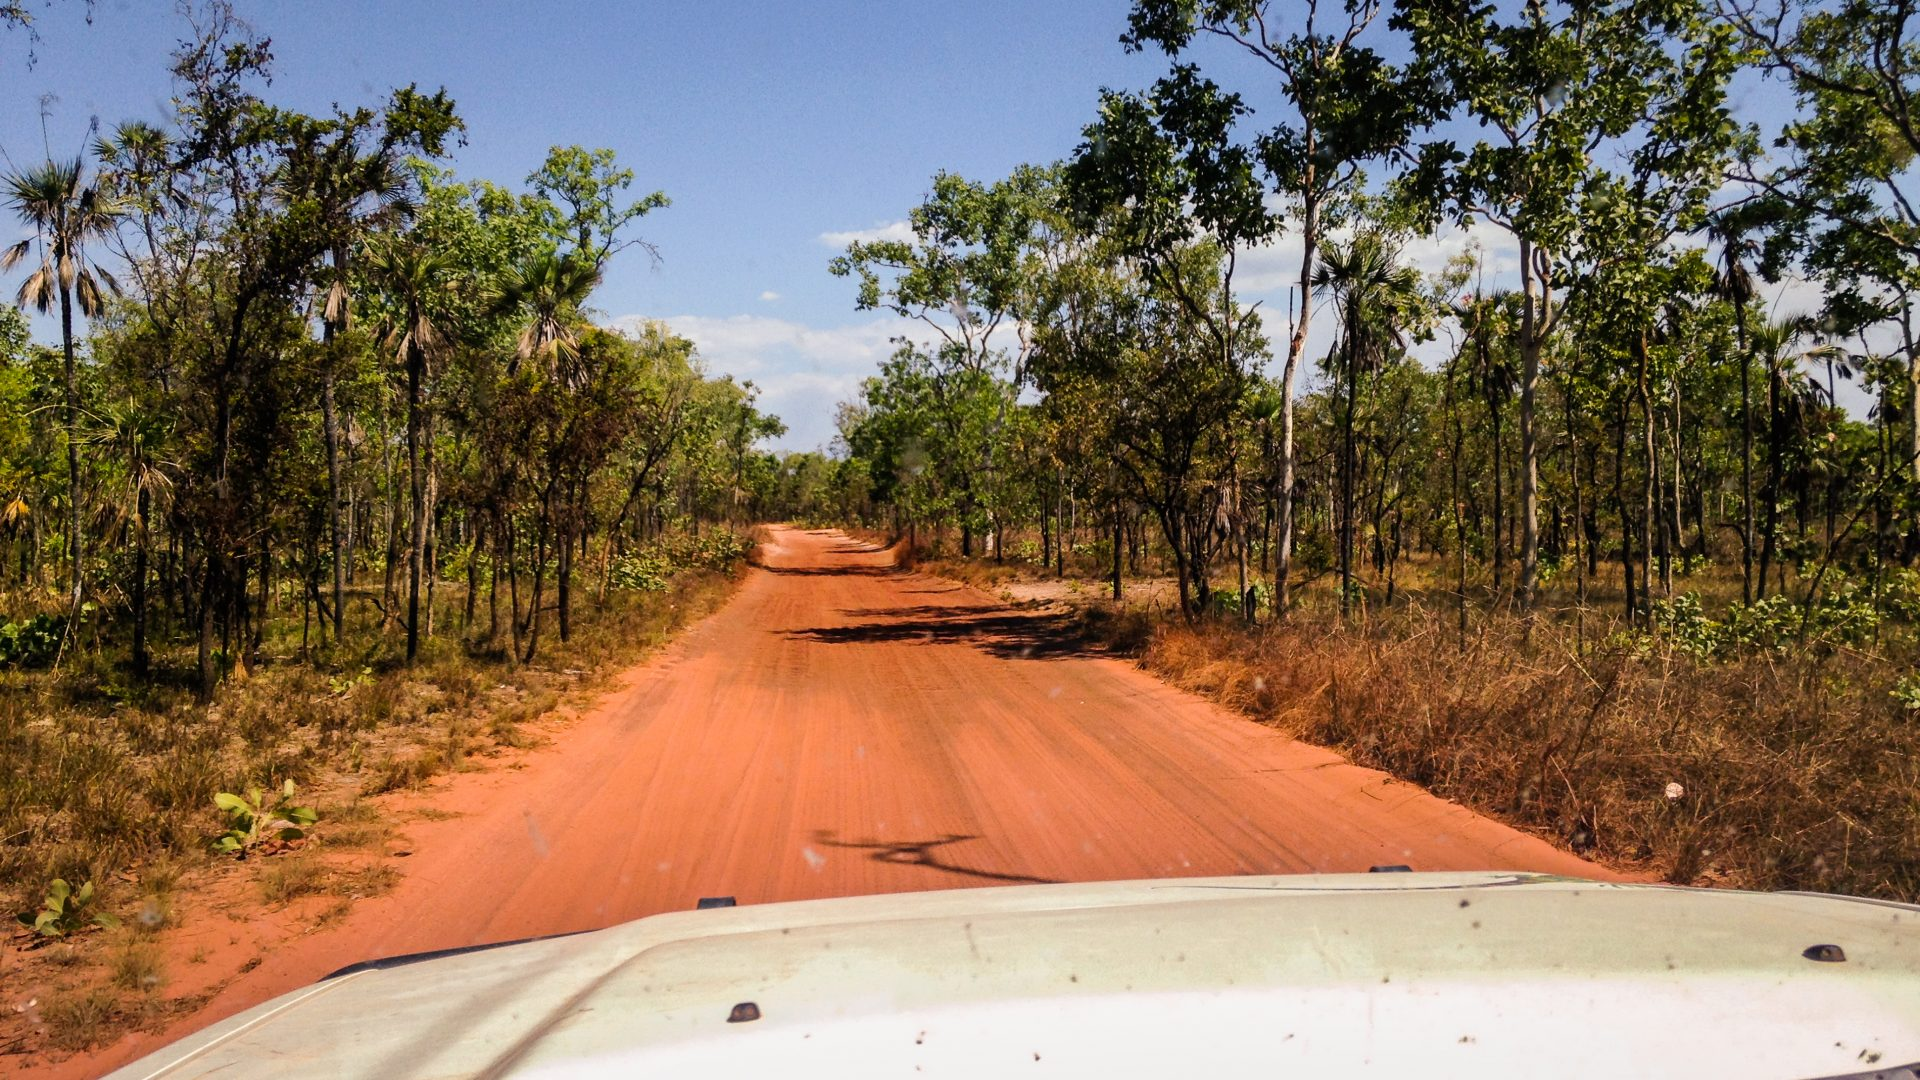 A jeep drives along a red road in the Australian Outback.